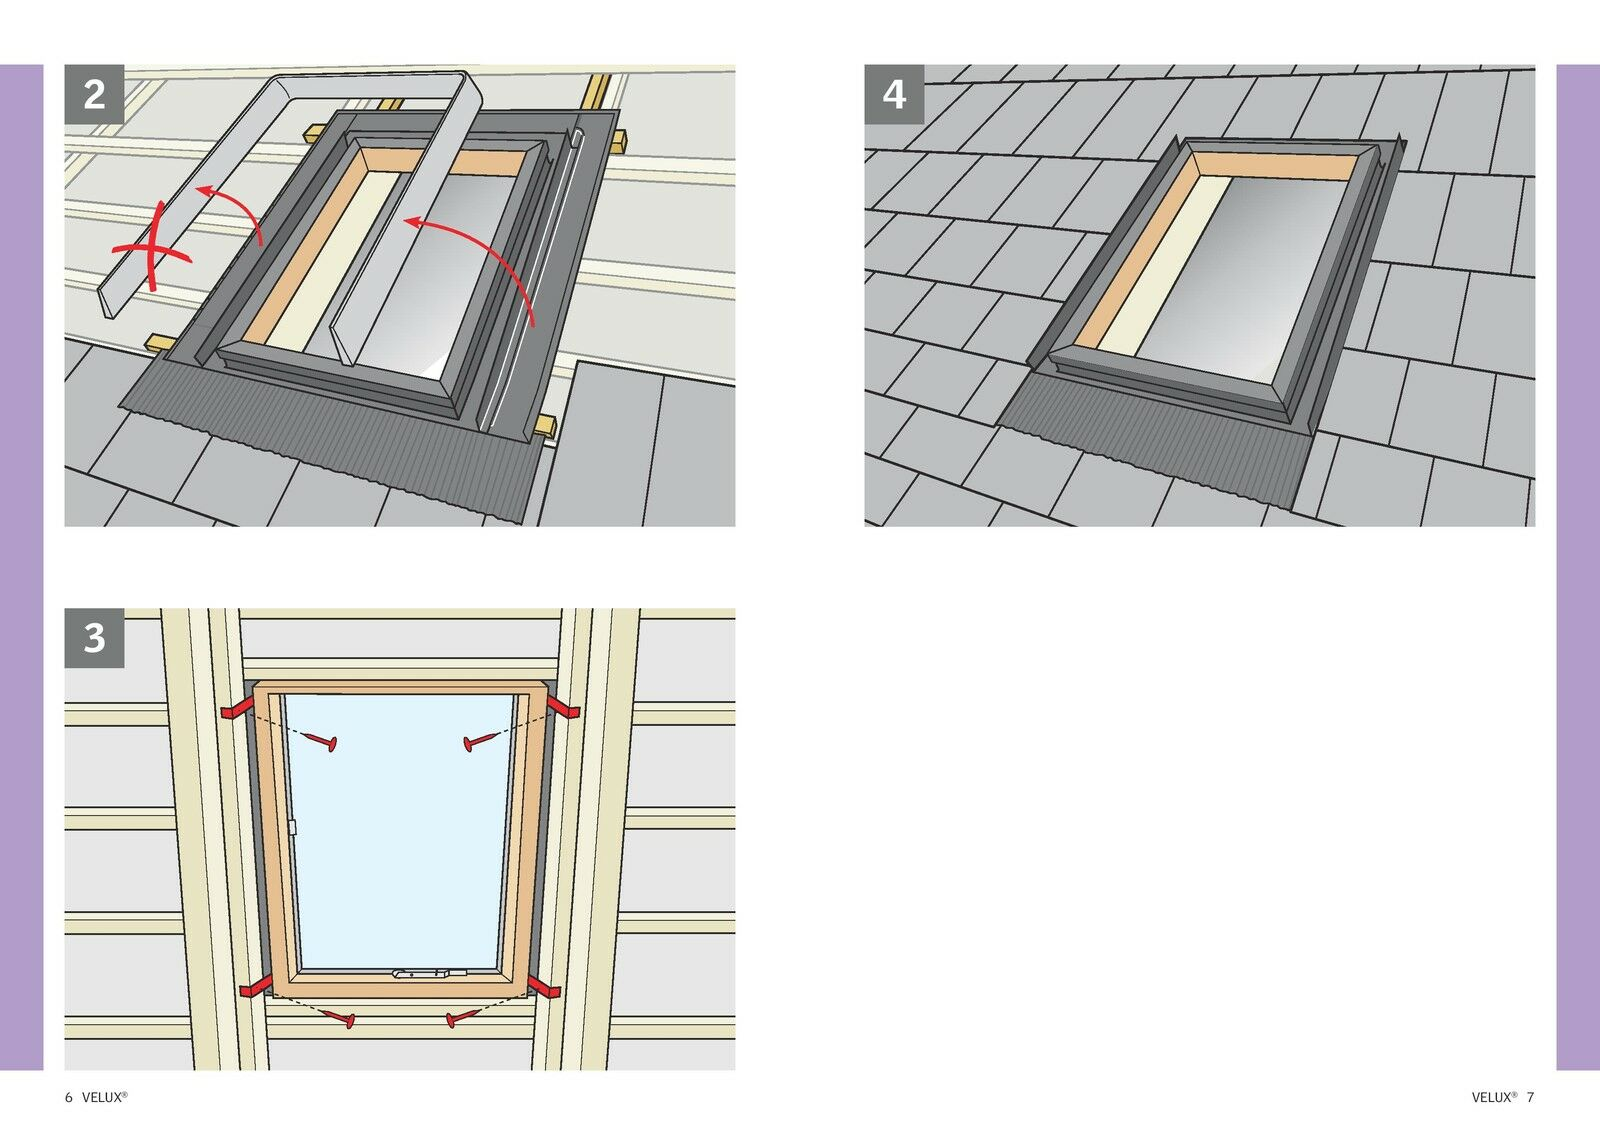 New Velux Vlt Access Roof Window 45x73cm Loft Rooflight